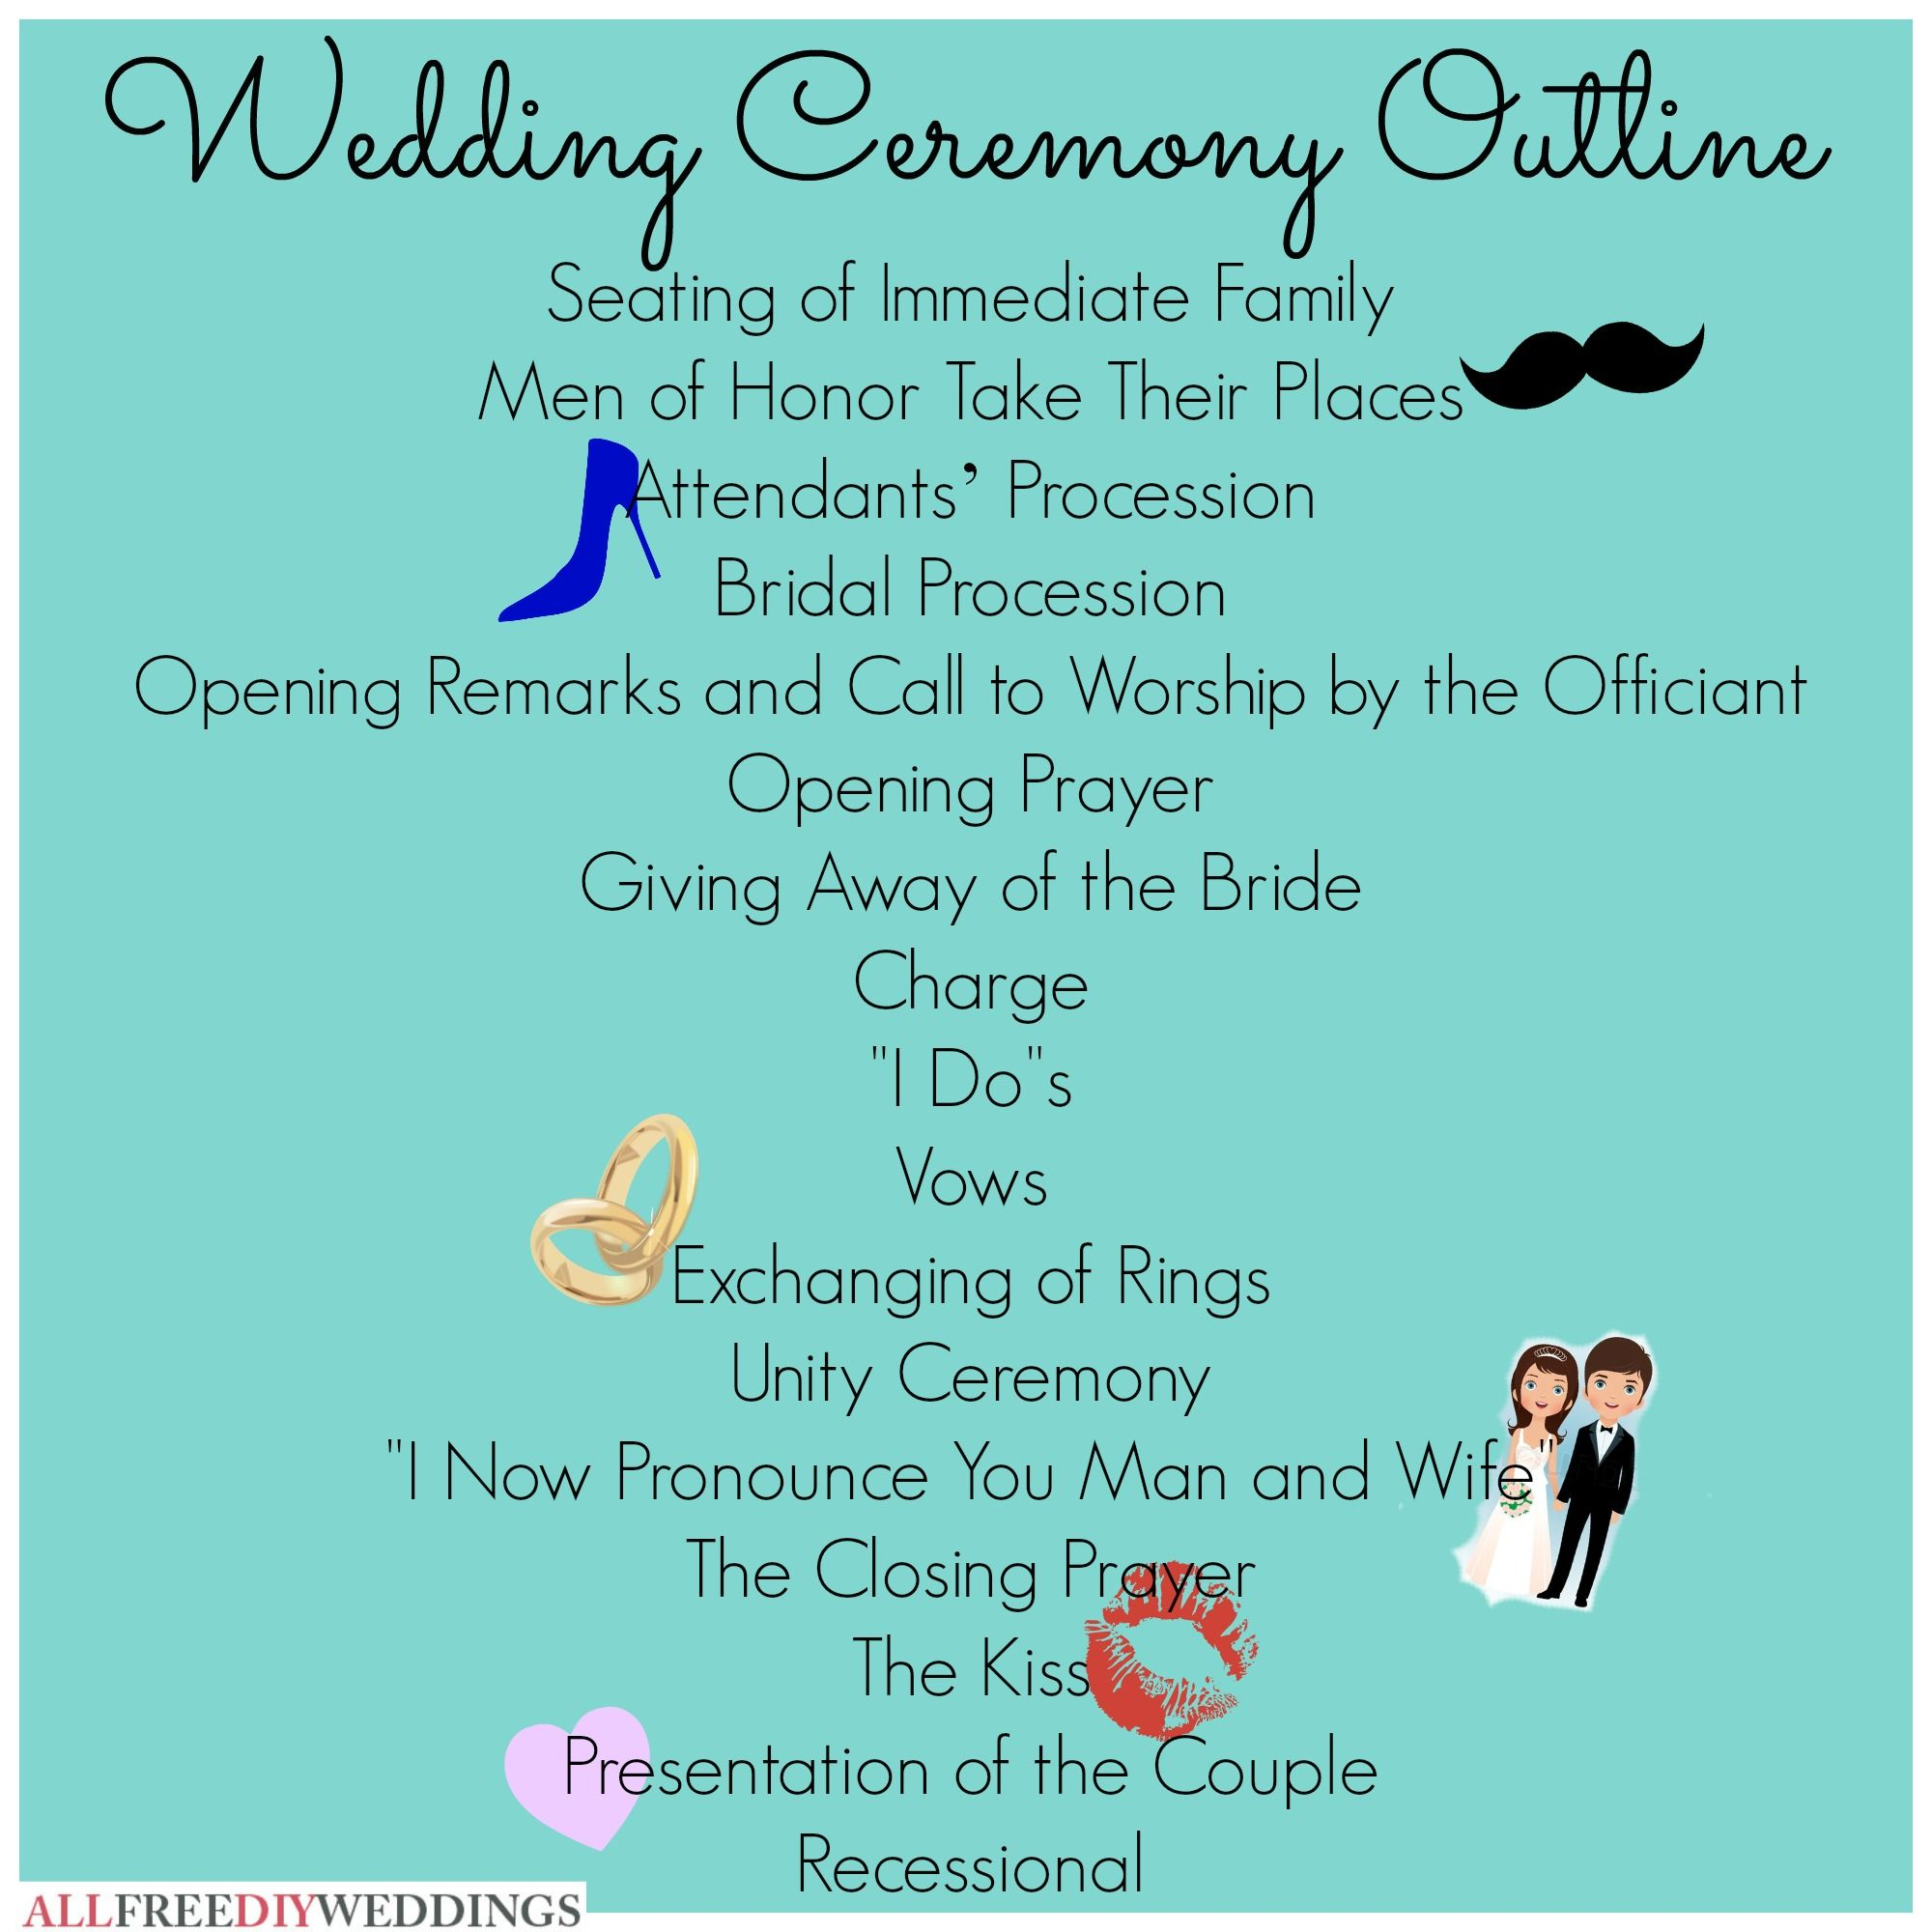 wedding blessing order of service template - wedding ceremony outline wedding ceremony outline